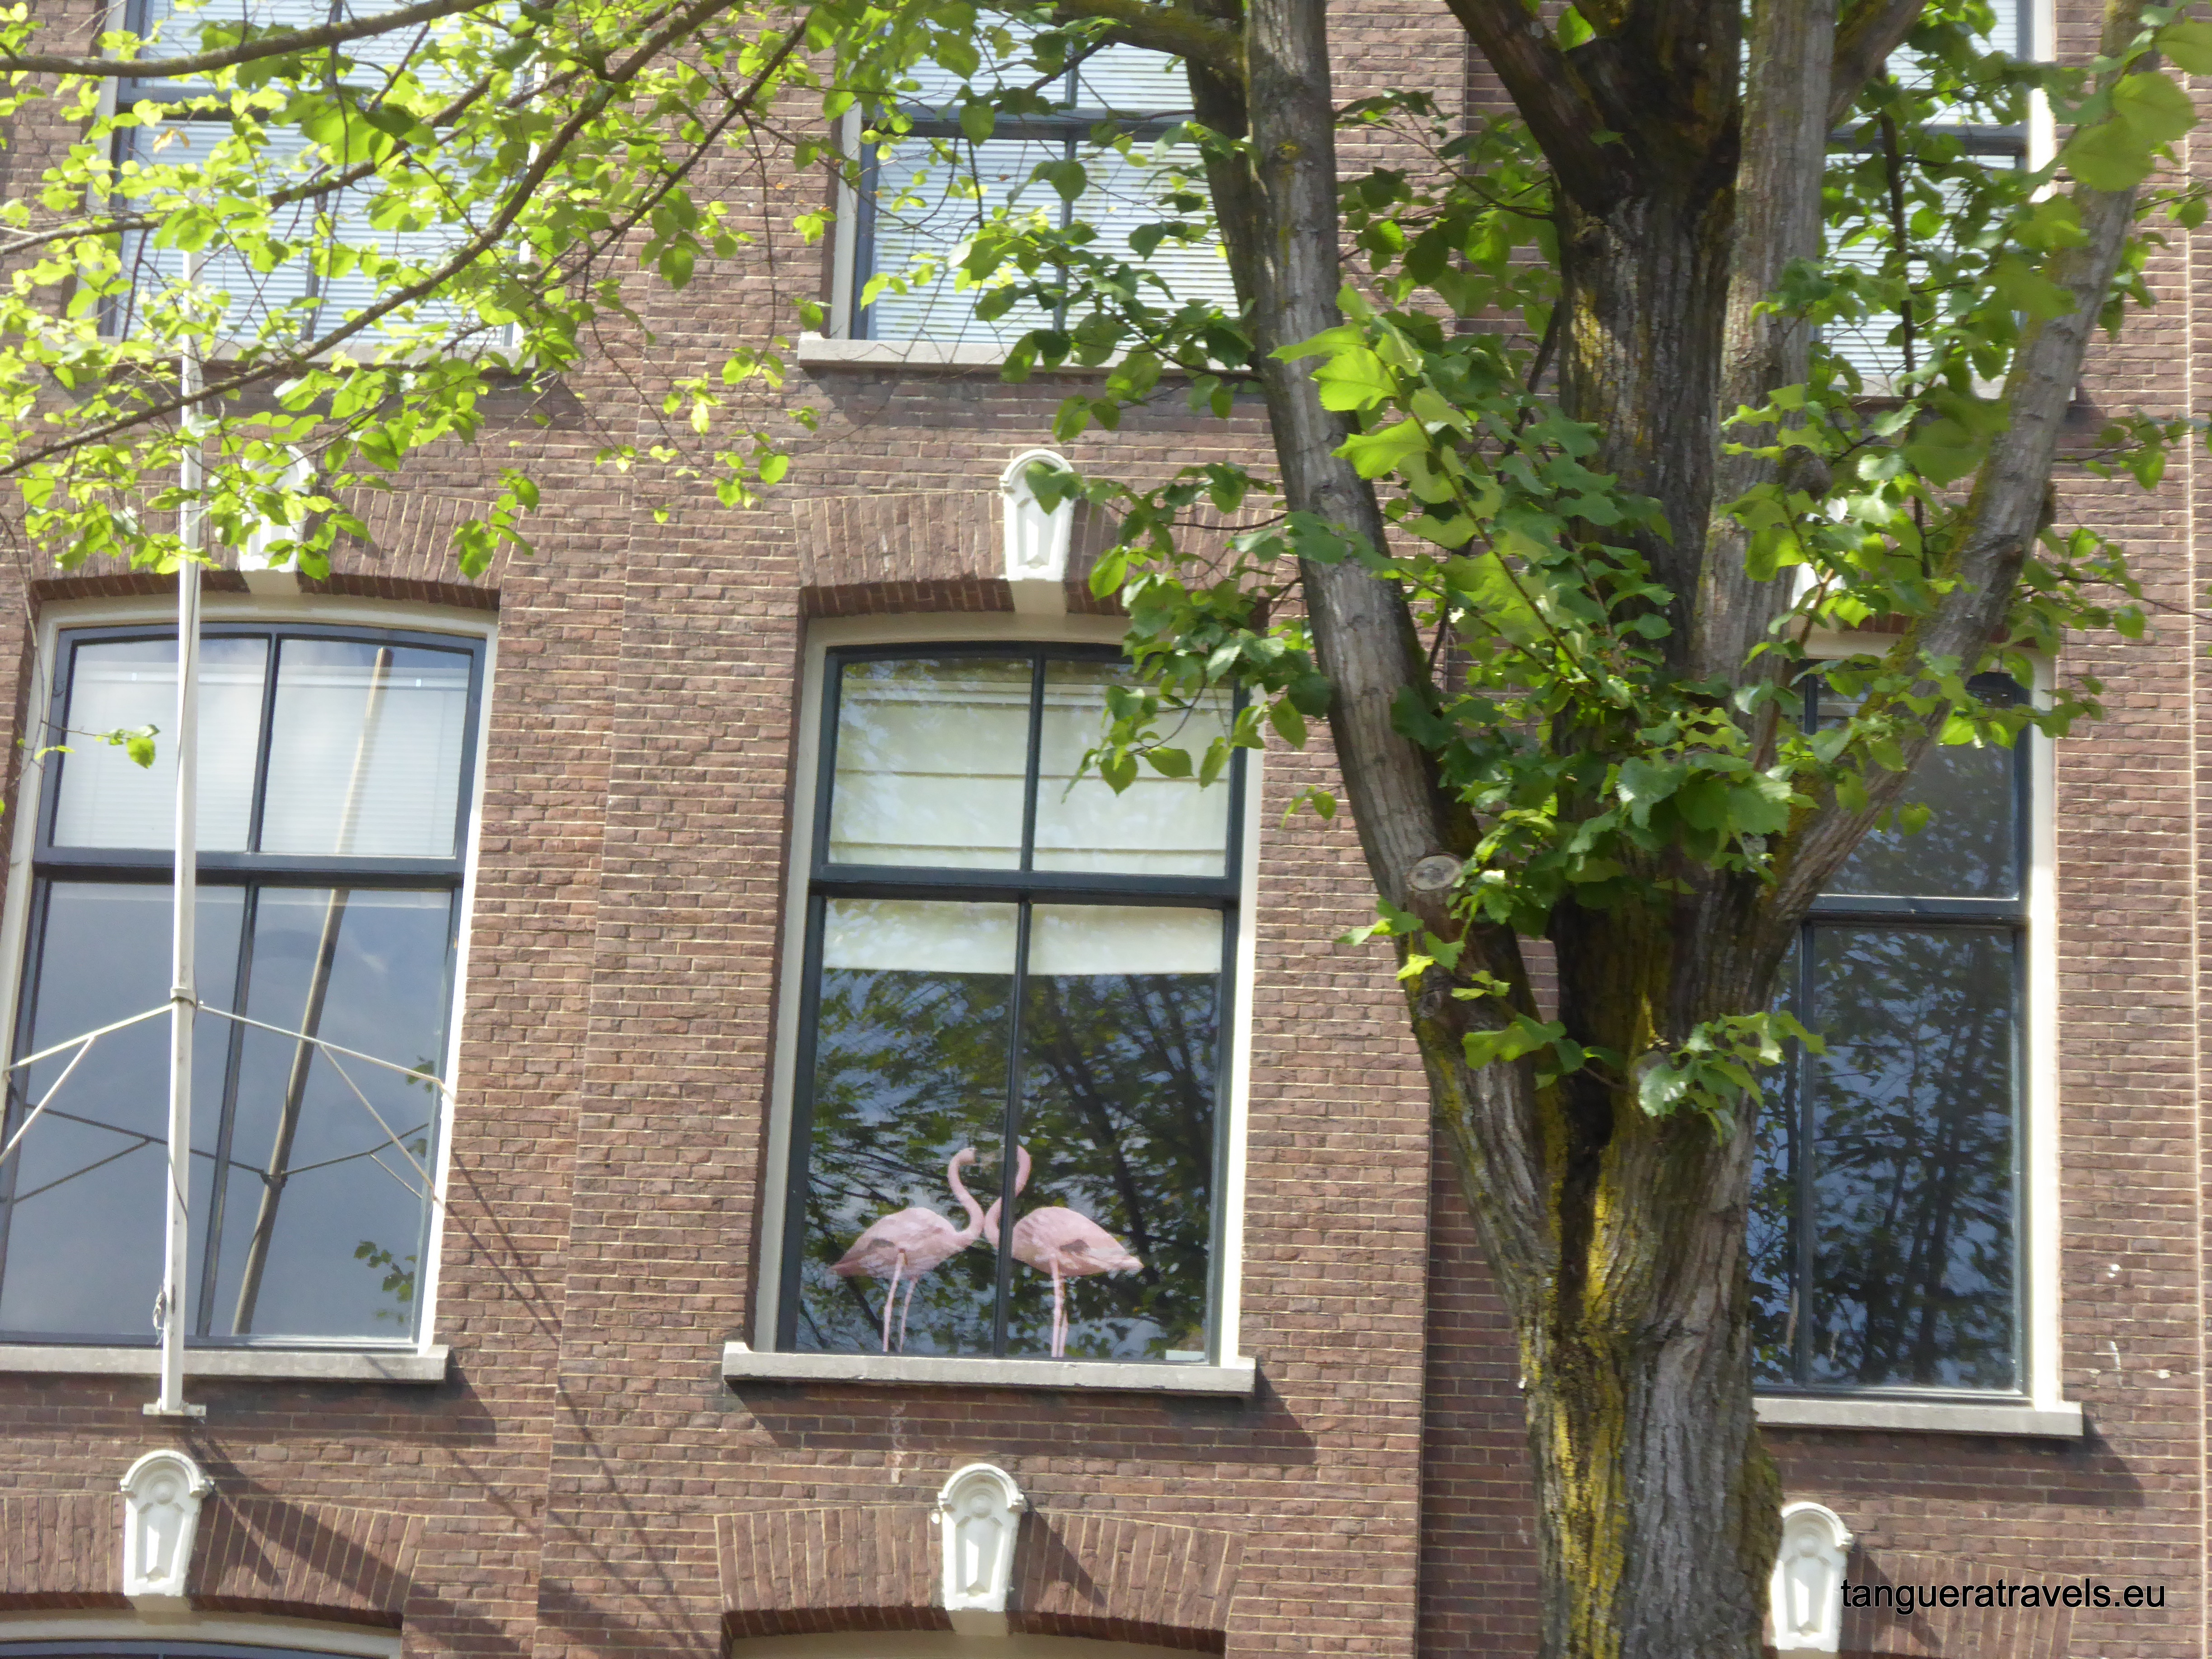 Flamingos at a window in Amsterdam